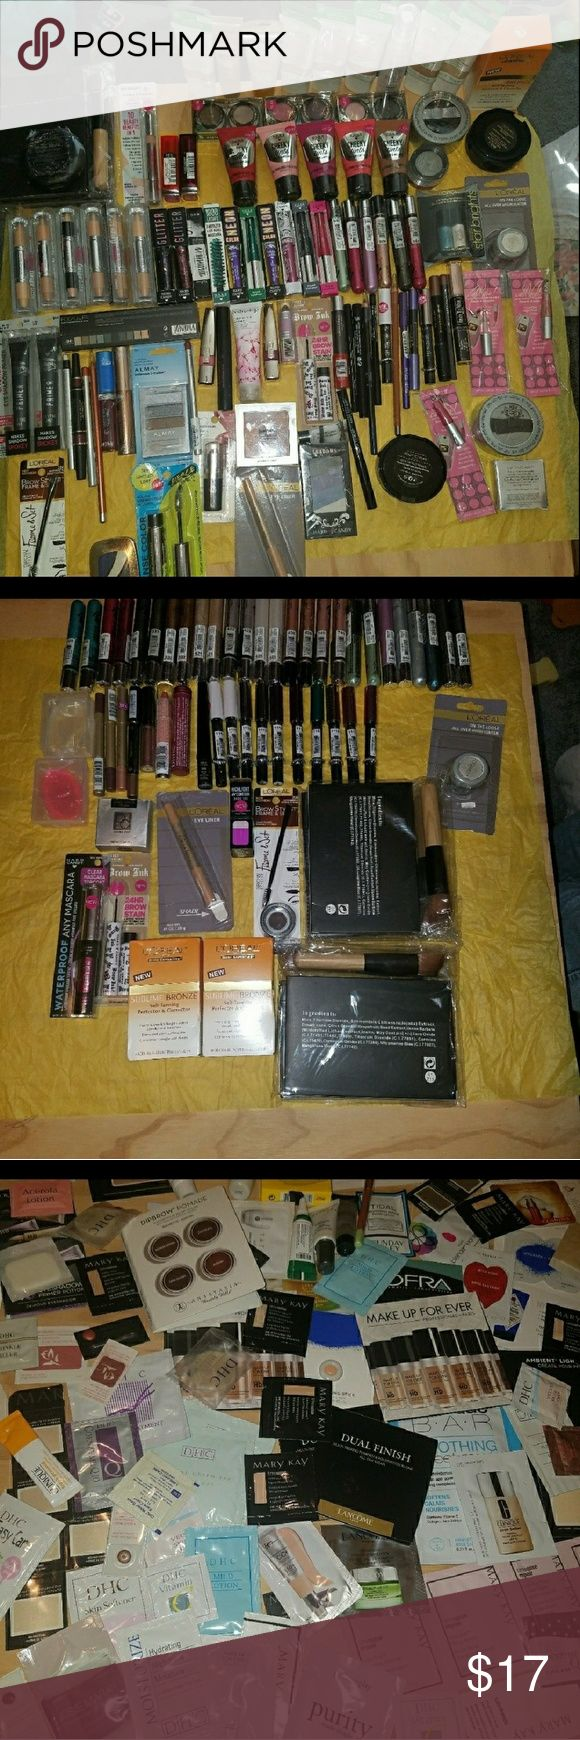 Makeup Bundle of 4 items Makeup Bundle of 4 New Sealed makeup  items please message below what you would like to see individually so you can pick out what you wantNo Holds Have hard candysome loreal some almay and a mix of other brands Feel Free to Ask Questions! have around160plus makeup  items to choose from! Pick Any You like!! Makeup